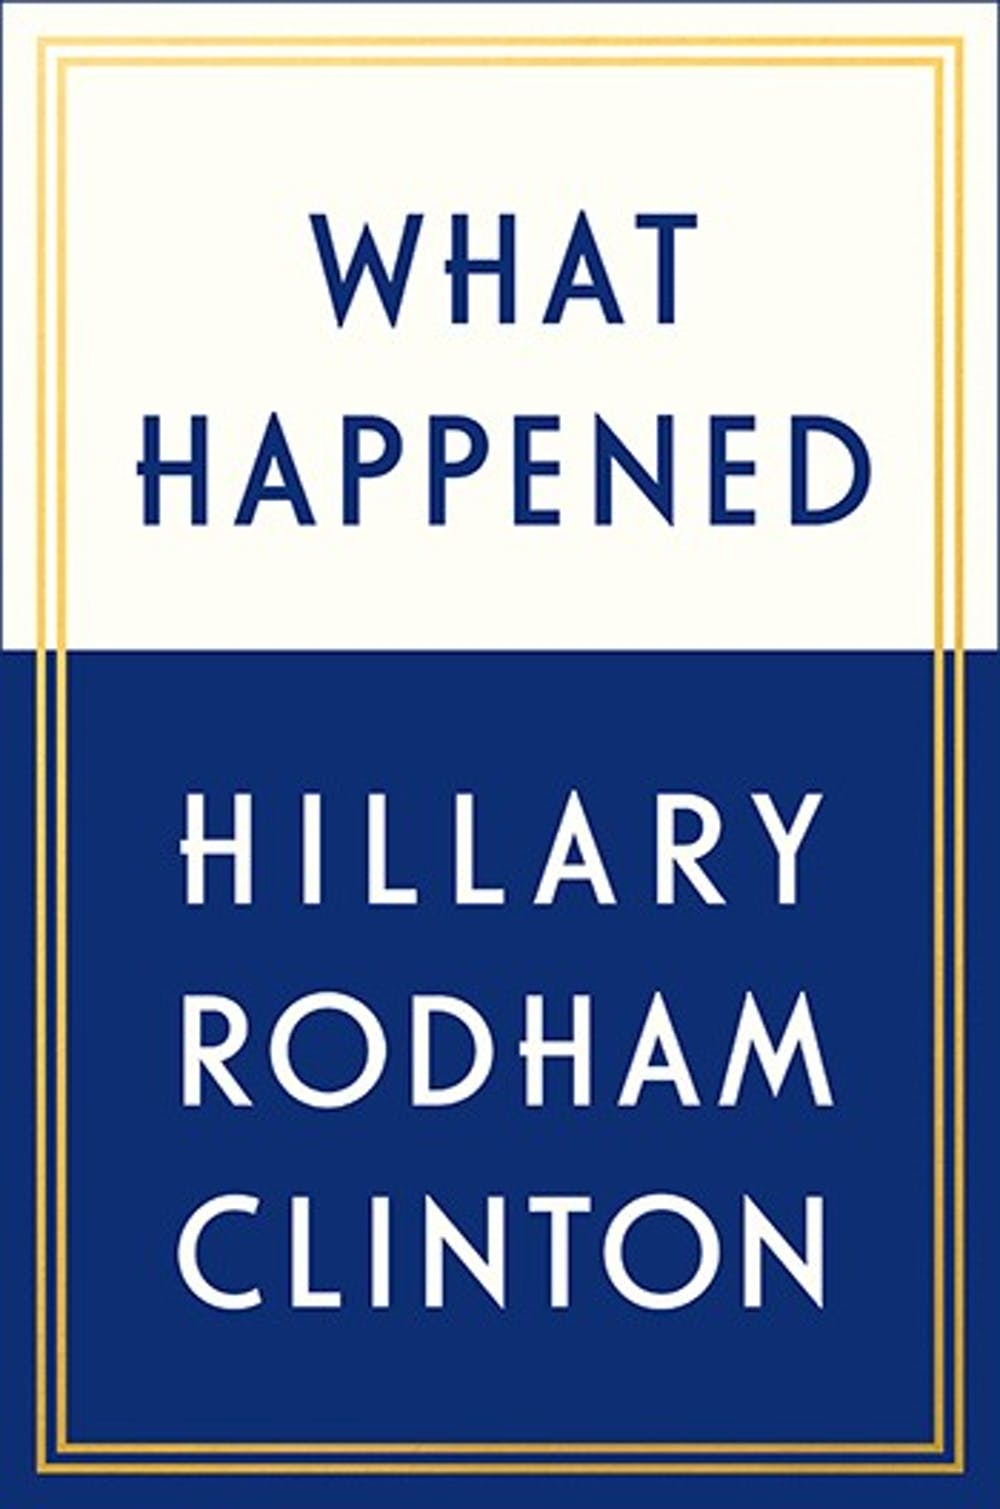 What_Happened_(Hillary_Rodham_Clinton)_book_cover